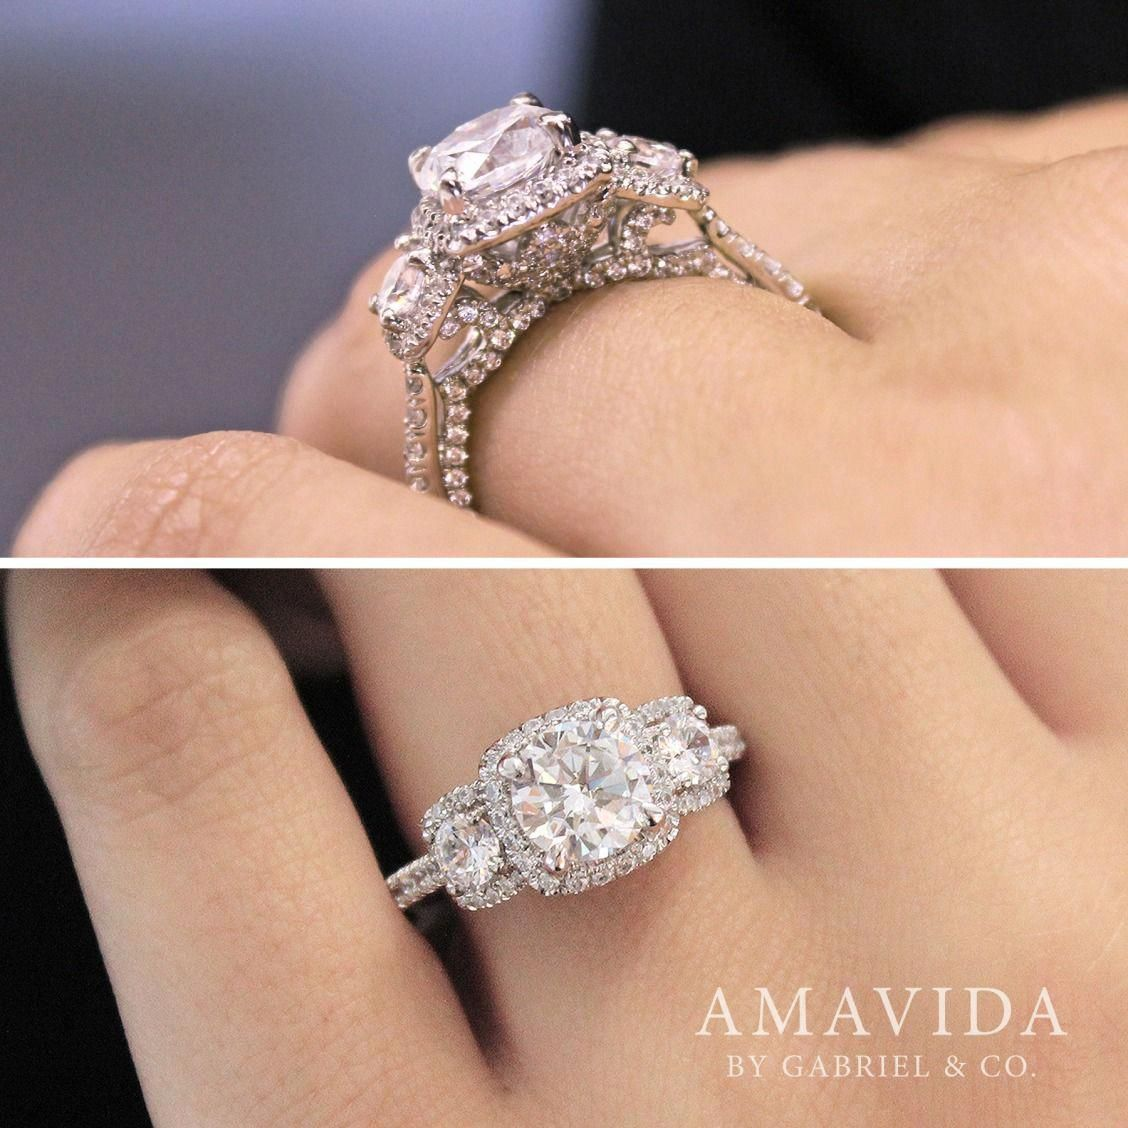 Gabriel ny voted most preferred fine jewelry and bridal brand